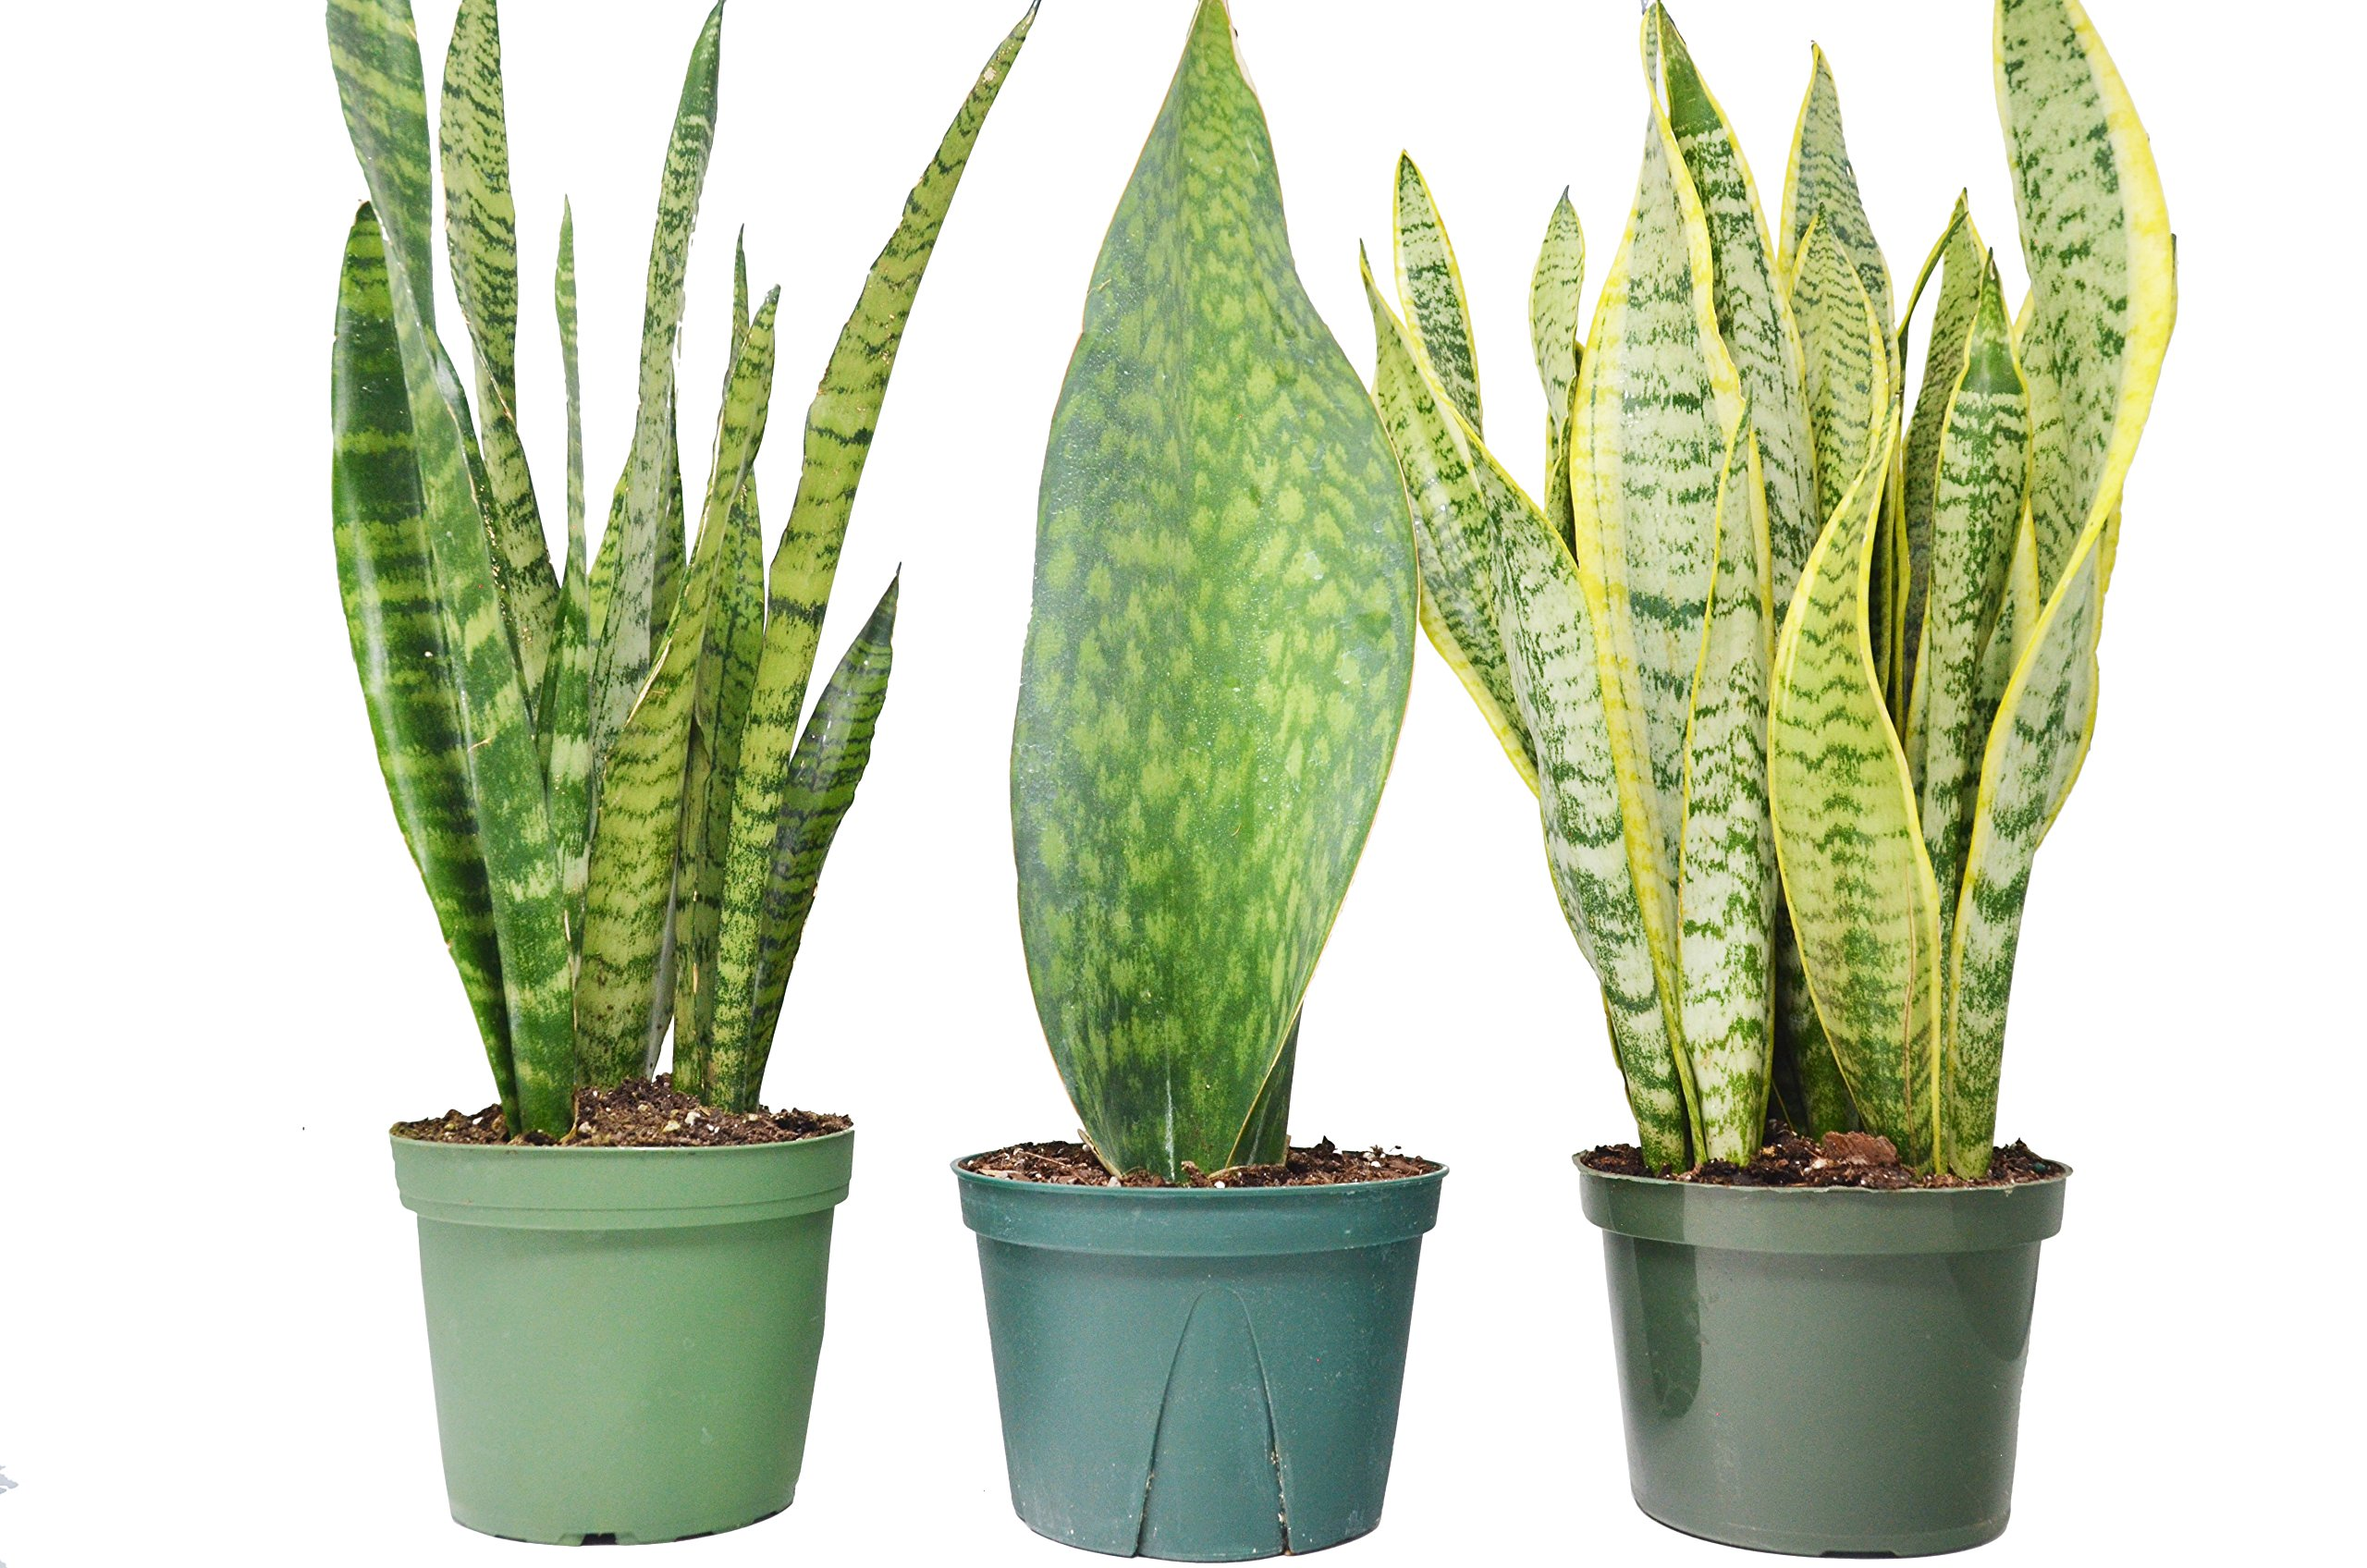 3 Snake (Sansevieria) Plants in 6'' Pots / 'Zeylanica', 'Laurentii' and 'Shark Fin' / 16'' - 24'' Tall / Live Plant / FREE Care Guide / House Plant / EASY CARE